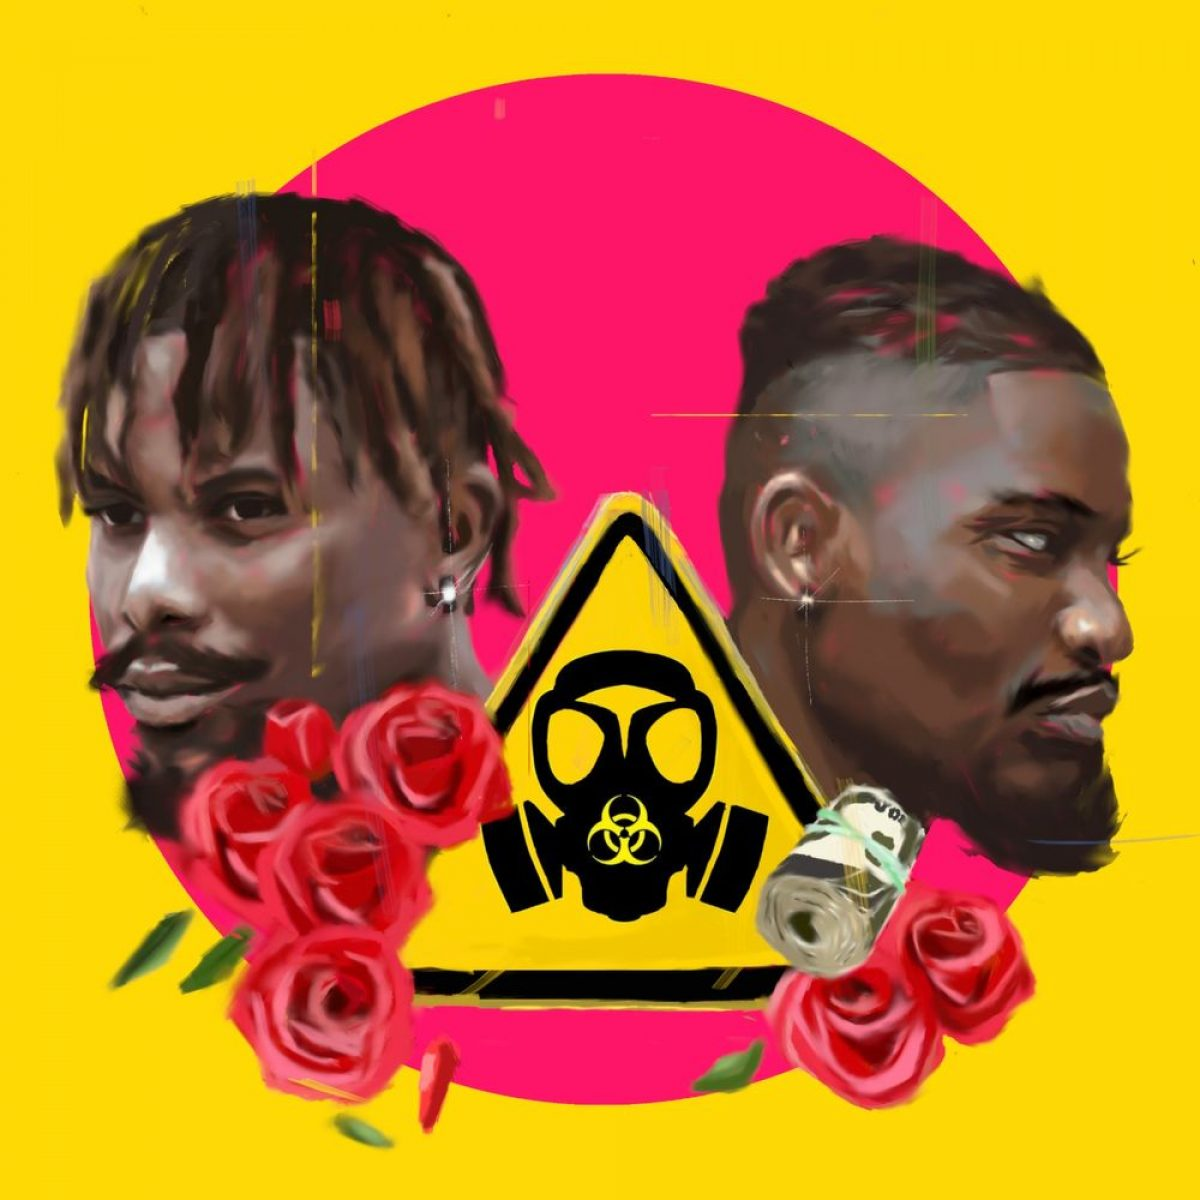 Ycee Tell Nobody Audio Lyrics Download Mp3 Music Lyric Video Lyrics Naija Songs 50 cent] you just be f*cking for free you just be f*cking to f*ck you might end up in the sheets but you ne. ycee tell nobody audio lyrics